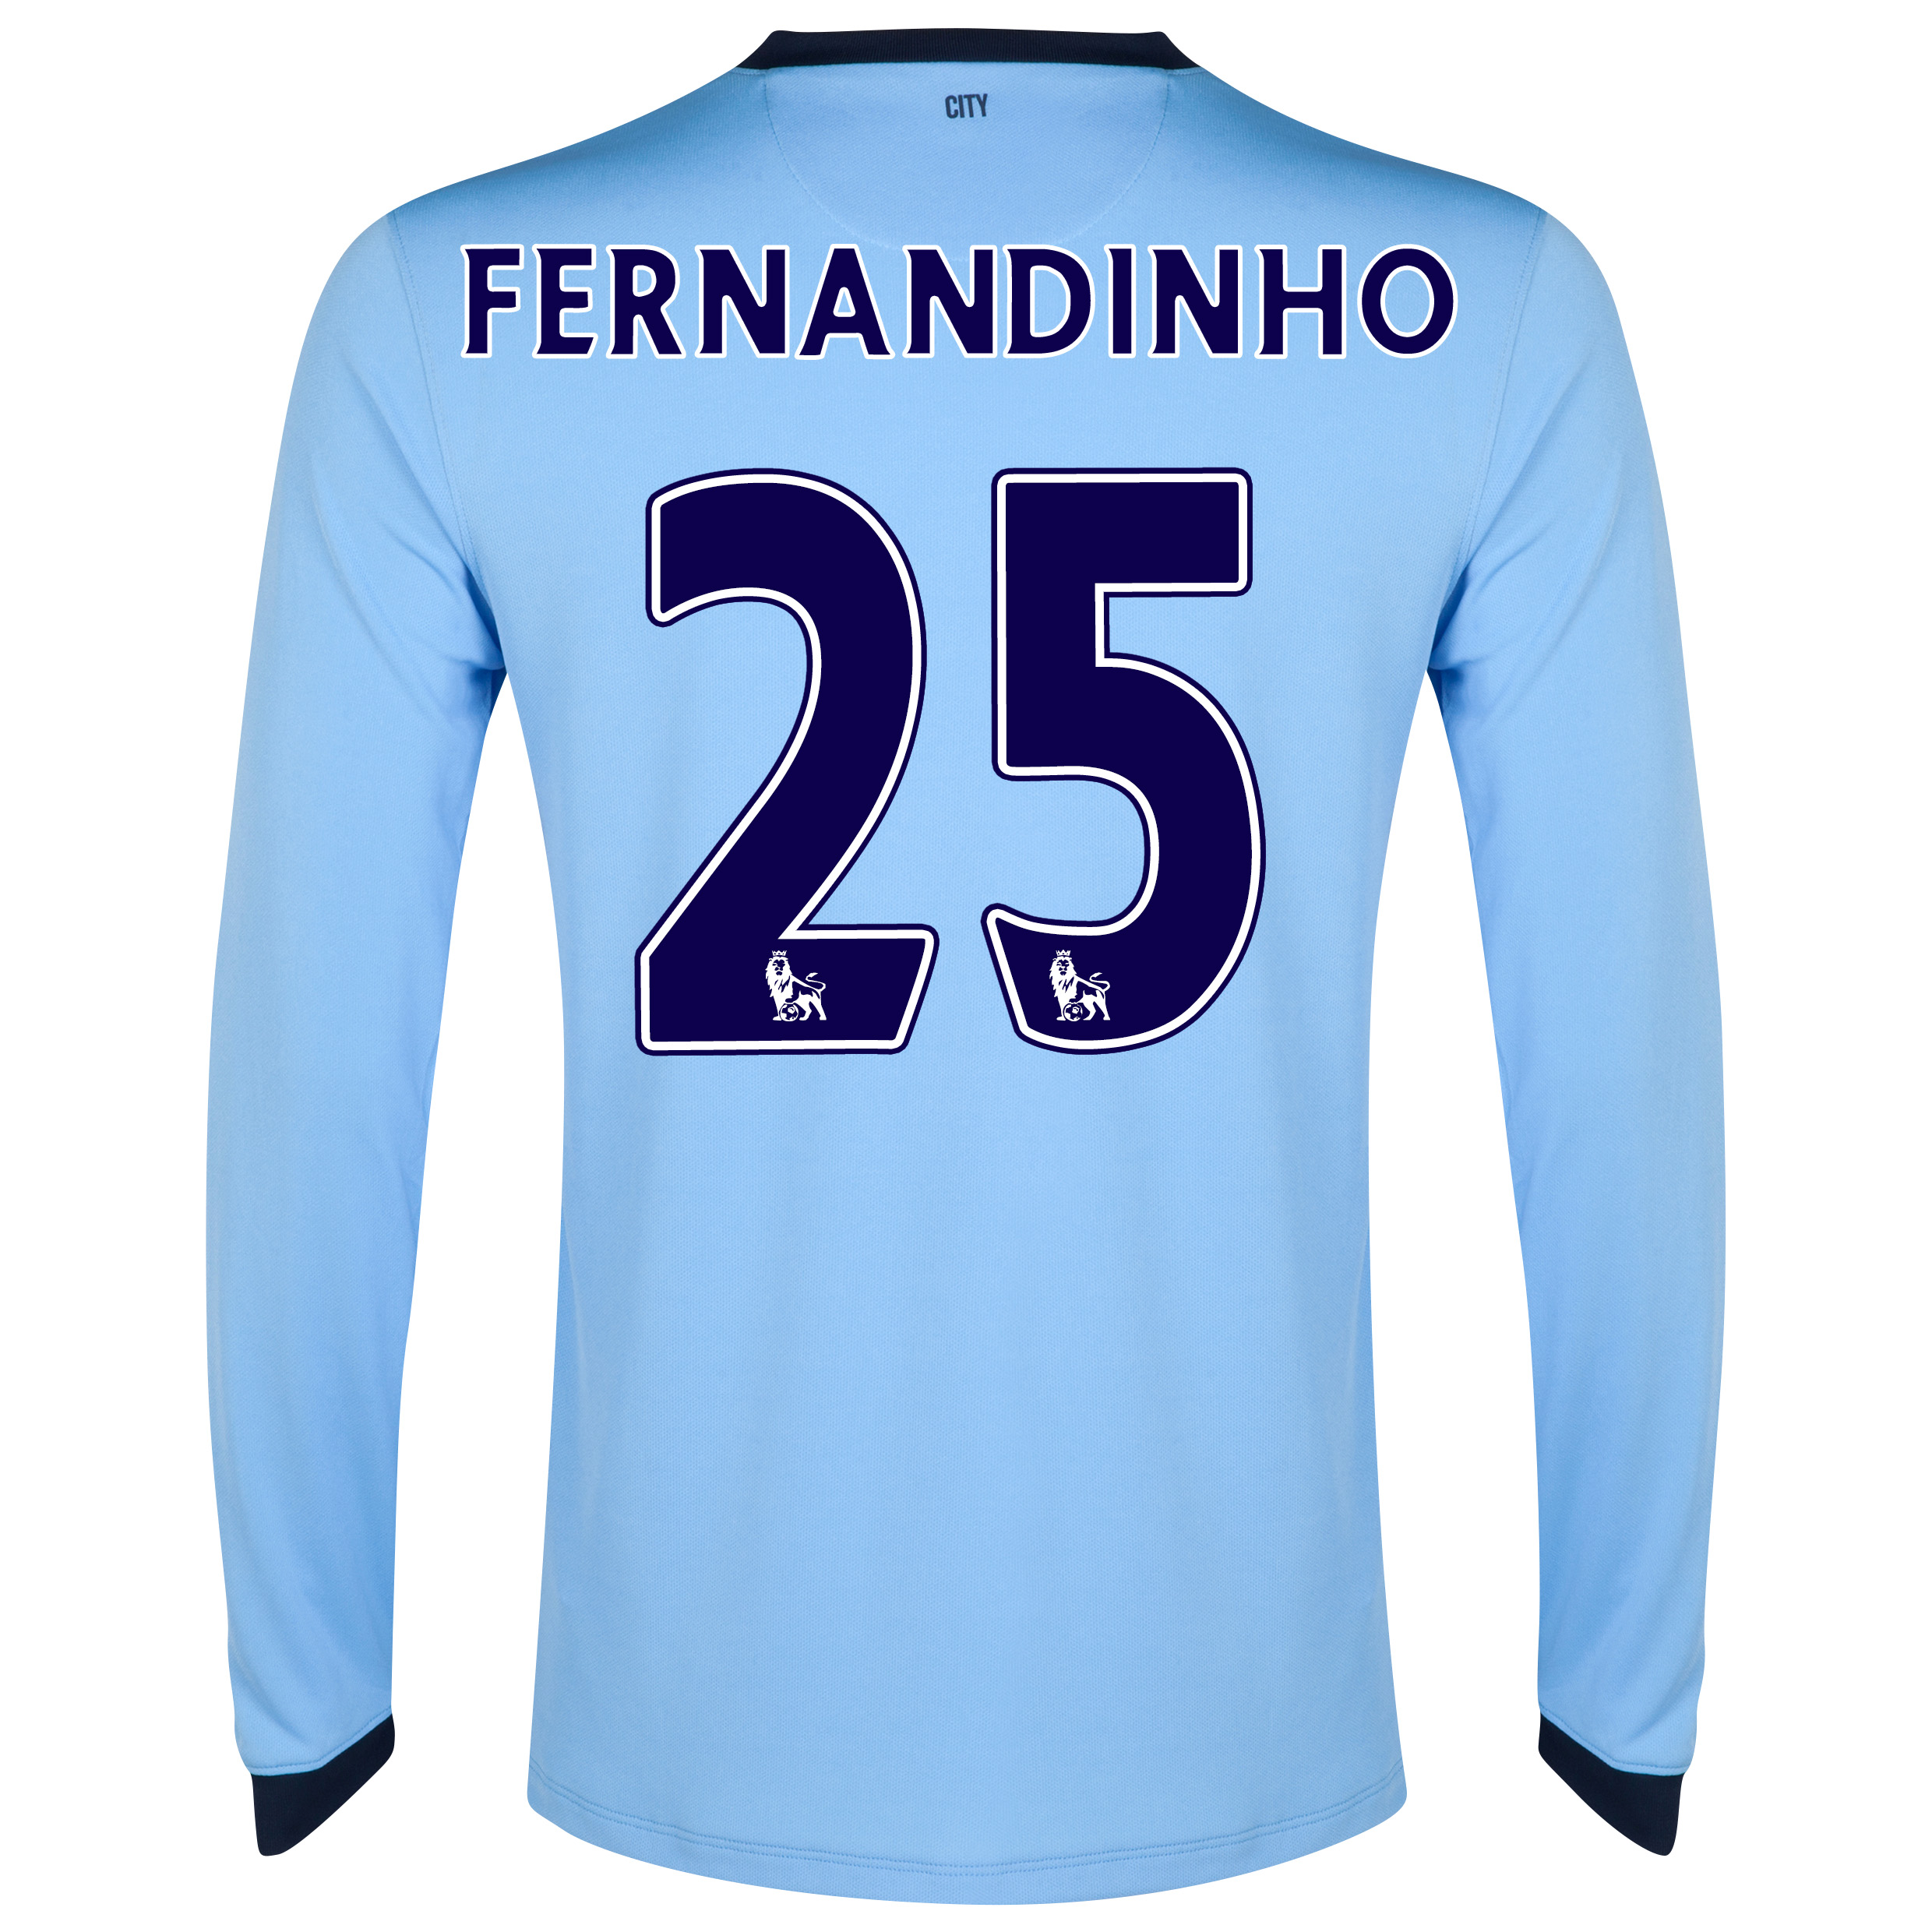 Manchester City Home Shirt 2014/15 - Long Sleeve - Kids Sky Blue with Fernandinho 25 printing